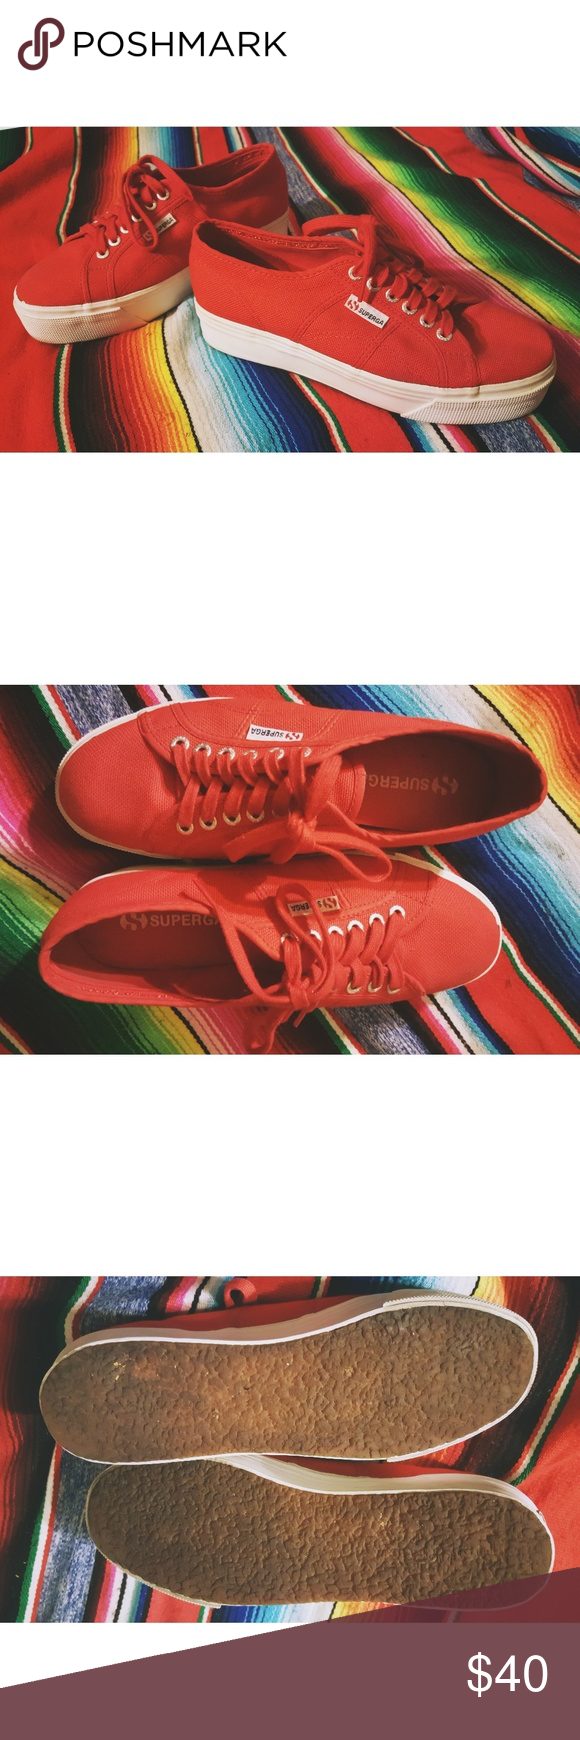 a4091dc90299 Superga red platform shoes Super cute red Superga platform tennis shoes! Only  worn once! Superga Shoes